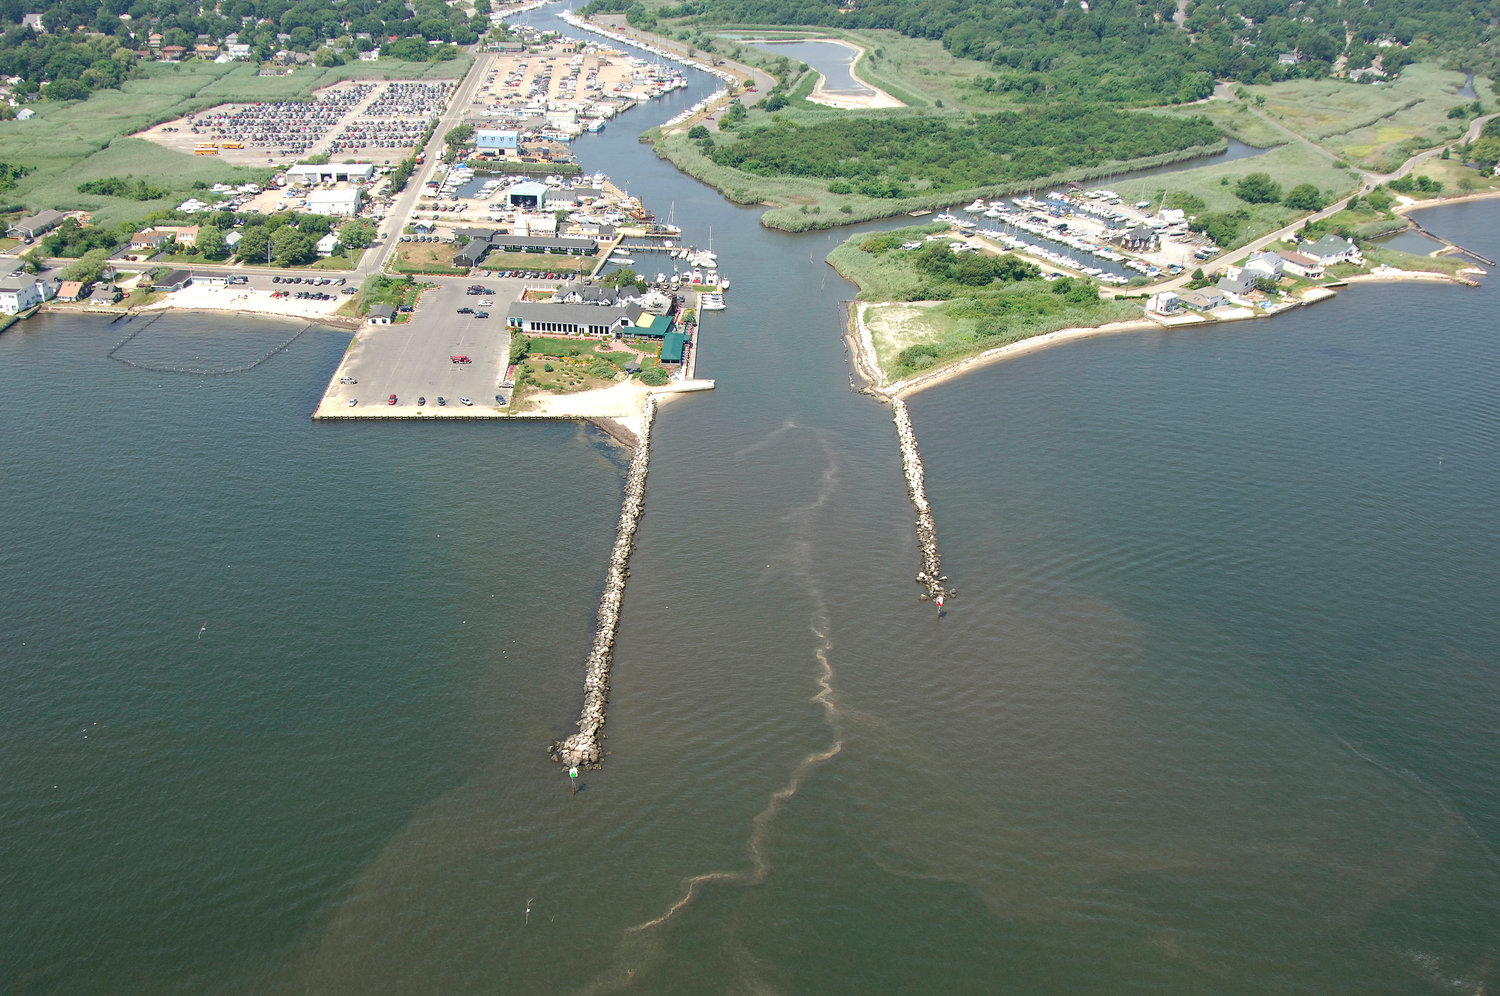 Browns River Marinas West and East will be dredged. The estuary opening to the Great South Bay has not been dredged in over 12 years.